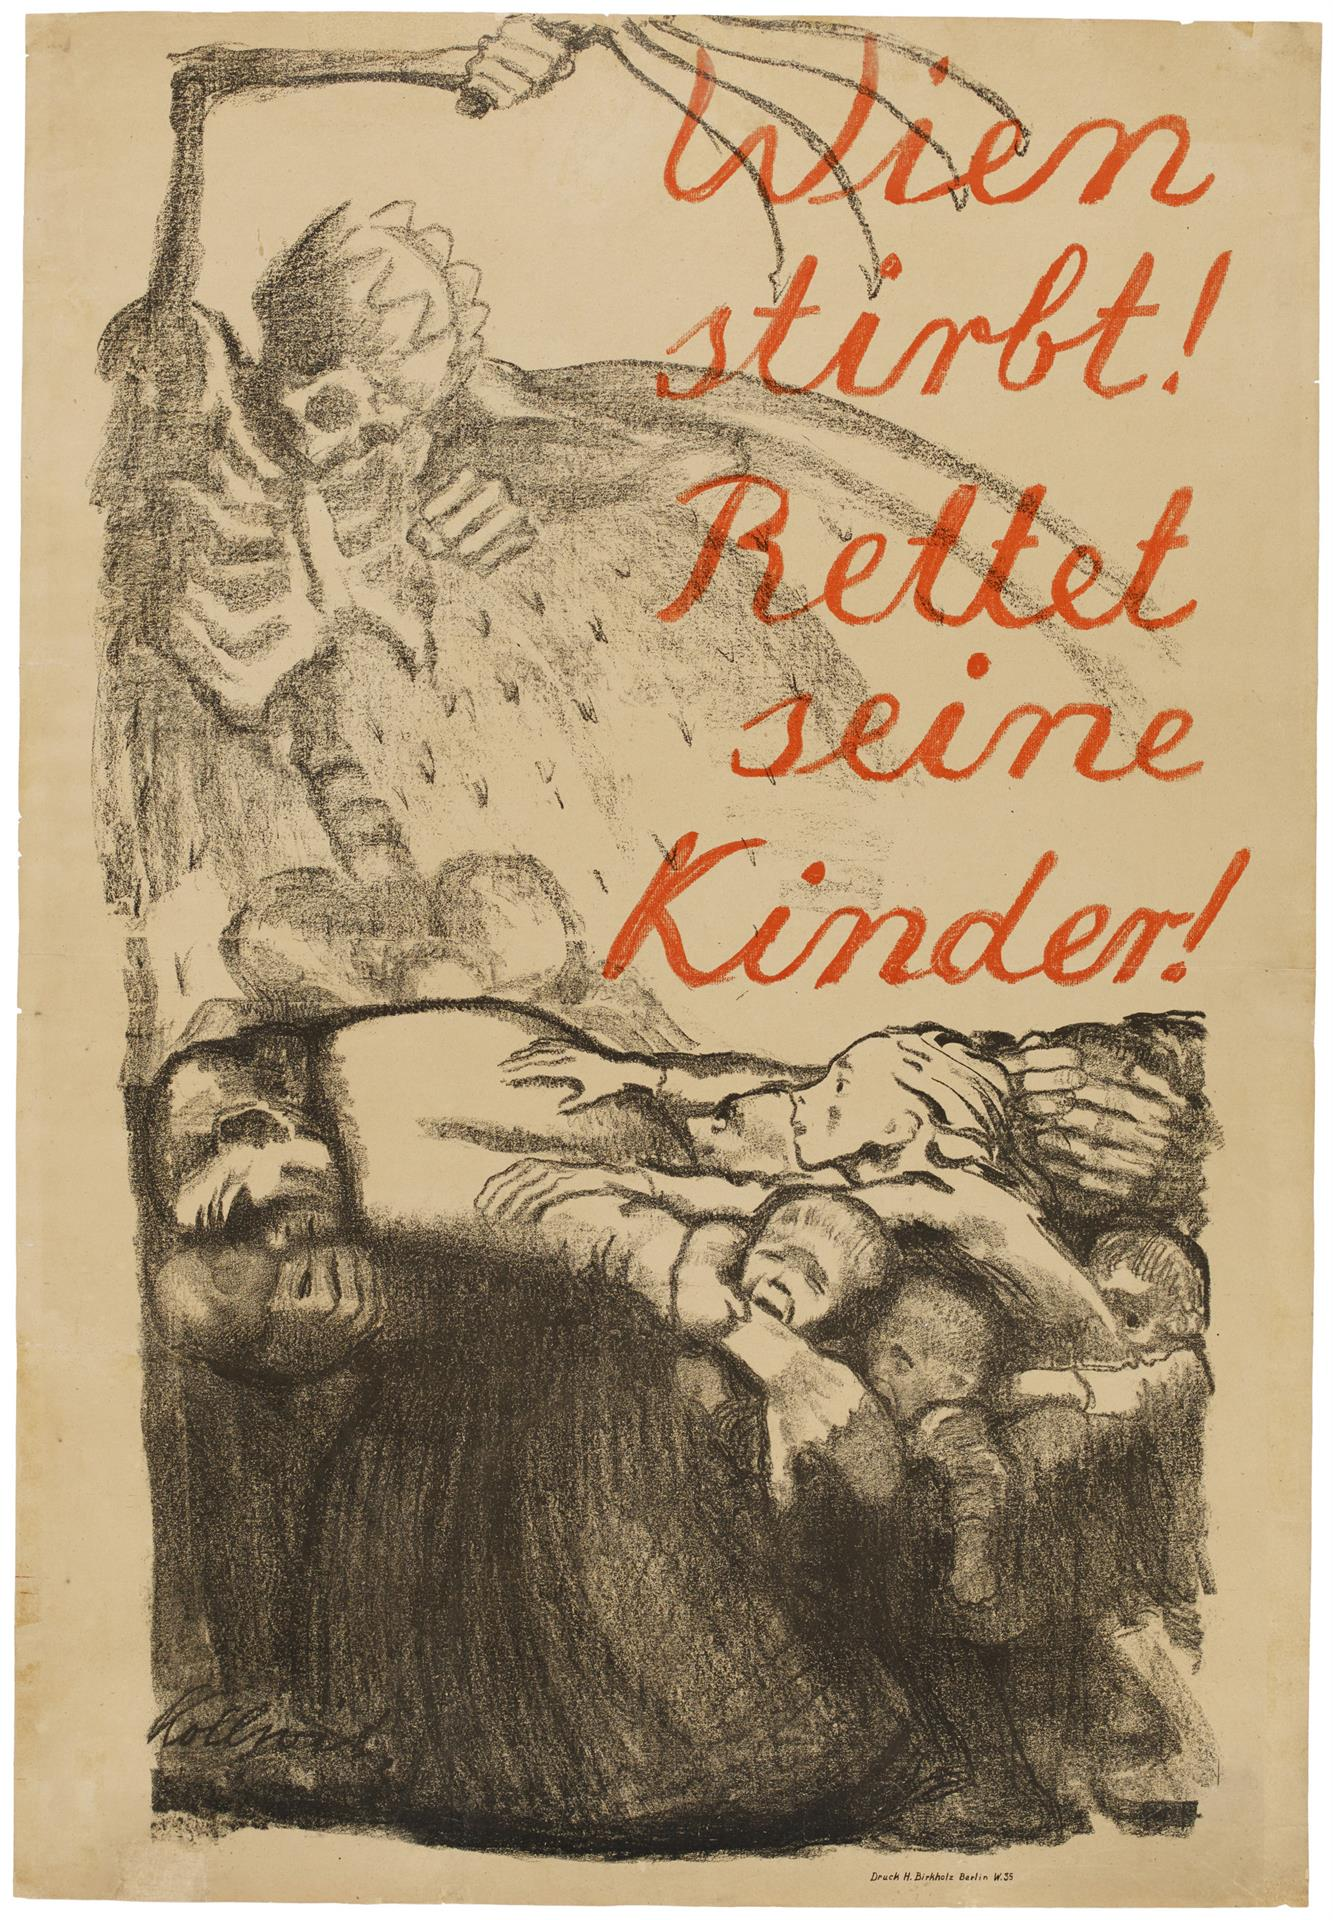 Käthe Kollwitz, Poster »Vienna is dying! Save its Children!«, 1920, crayon lithograph in to two colours (transfer, text on ribbed laid paper), Kn 148 II, Cologne Kollwitz Collection © Käthe Kollwitz Museum Köln